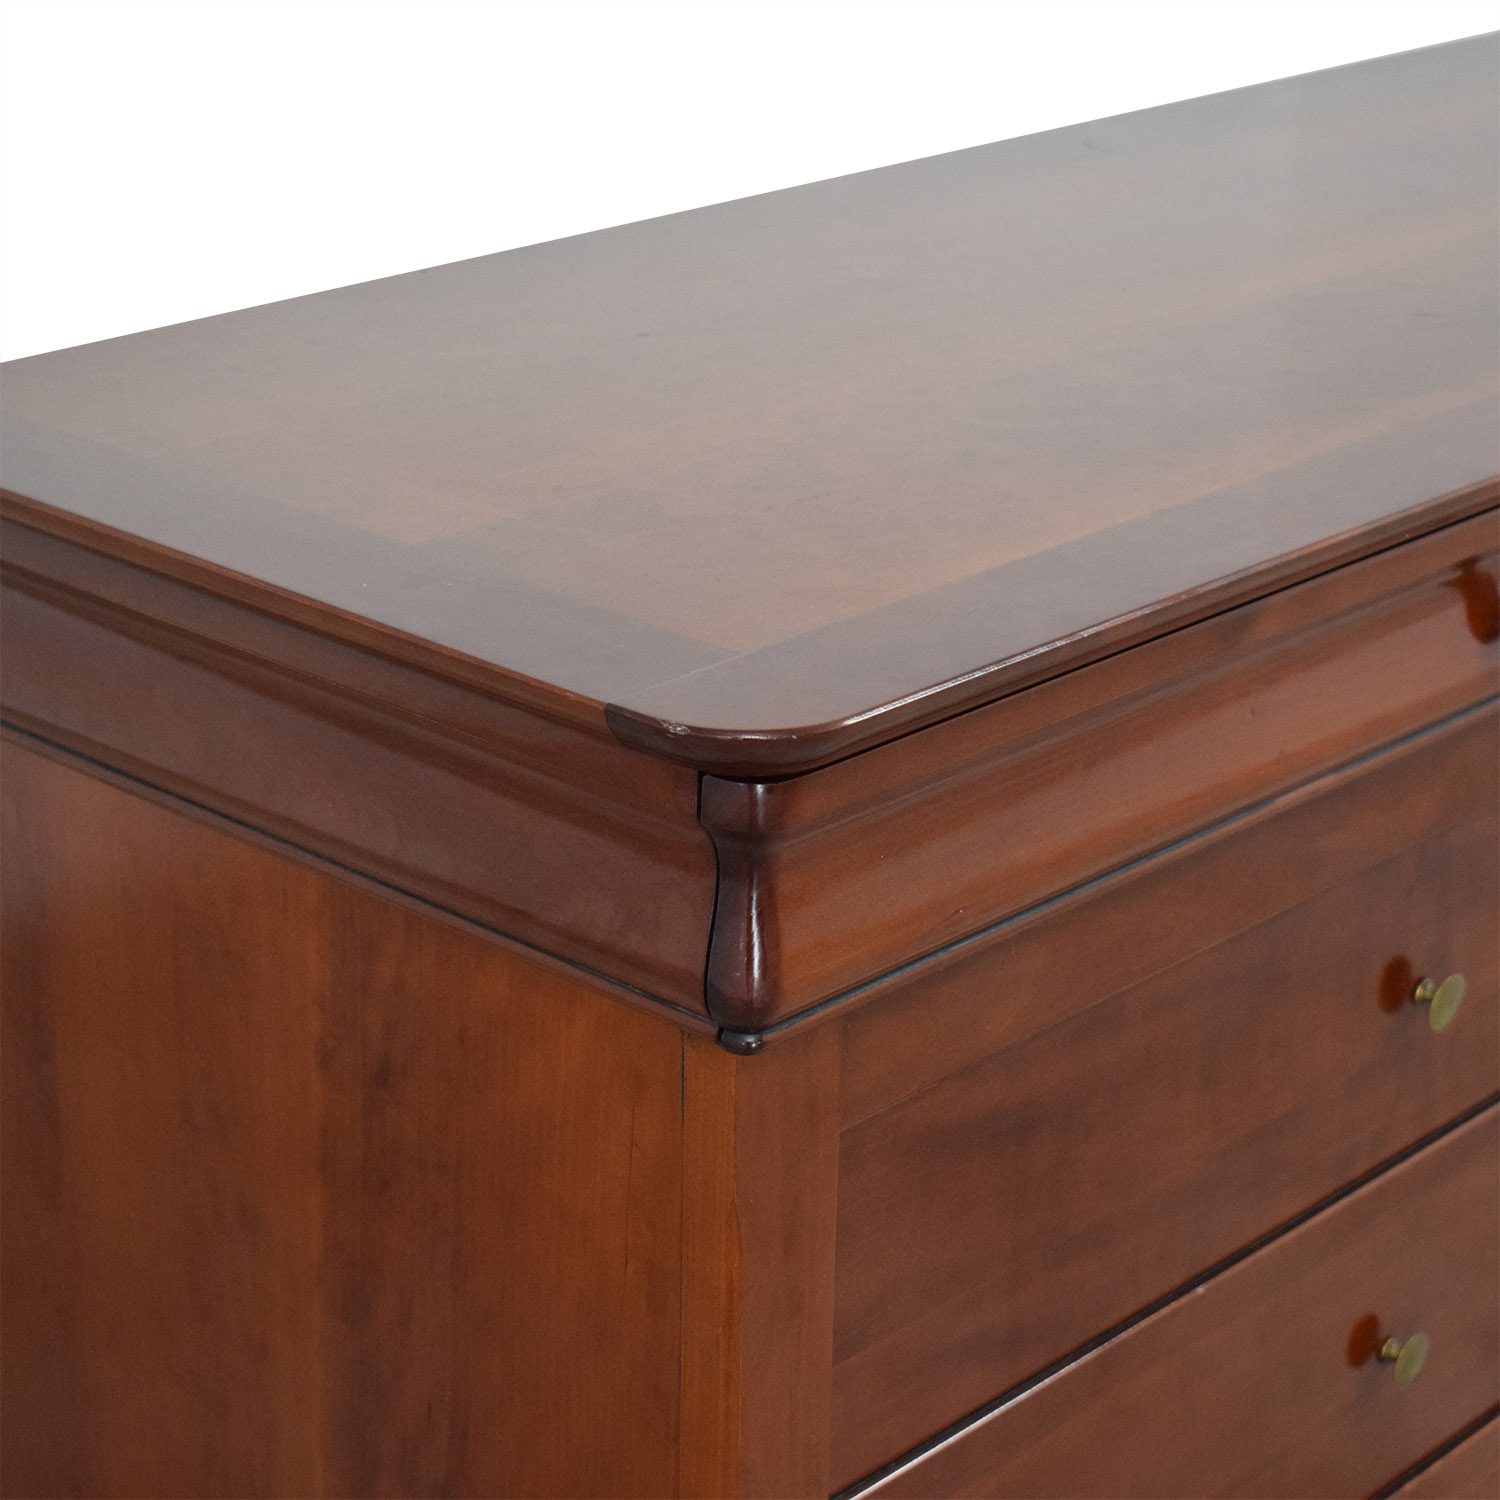 Grange Grange Louis Phillippe Chest of Drawers